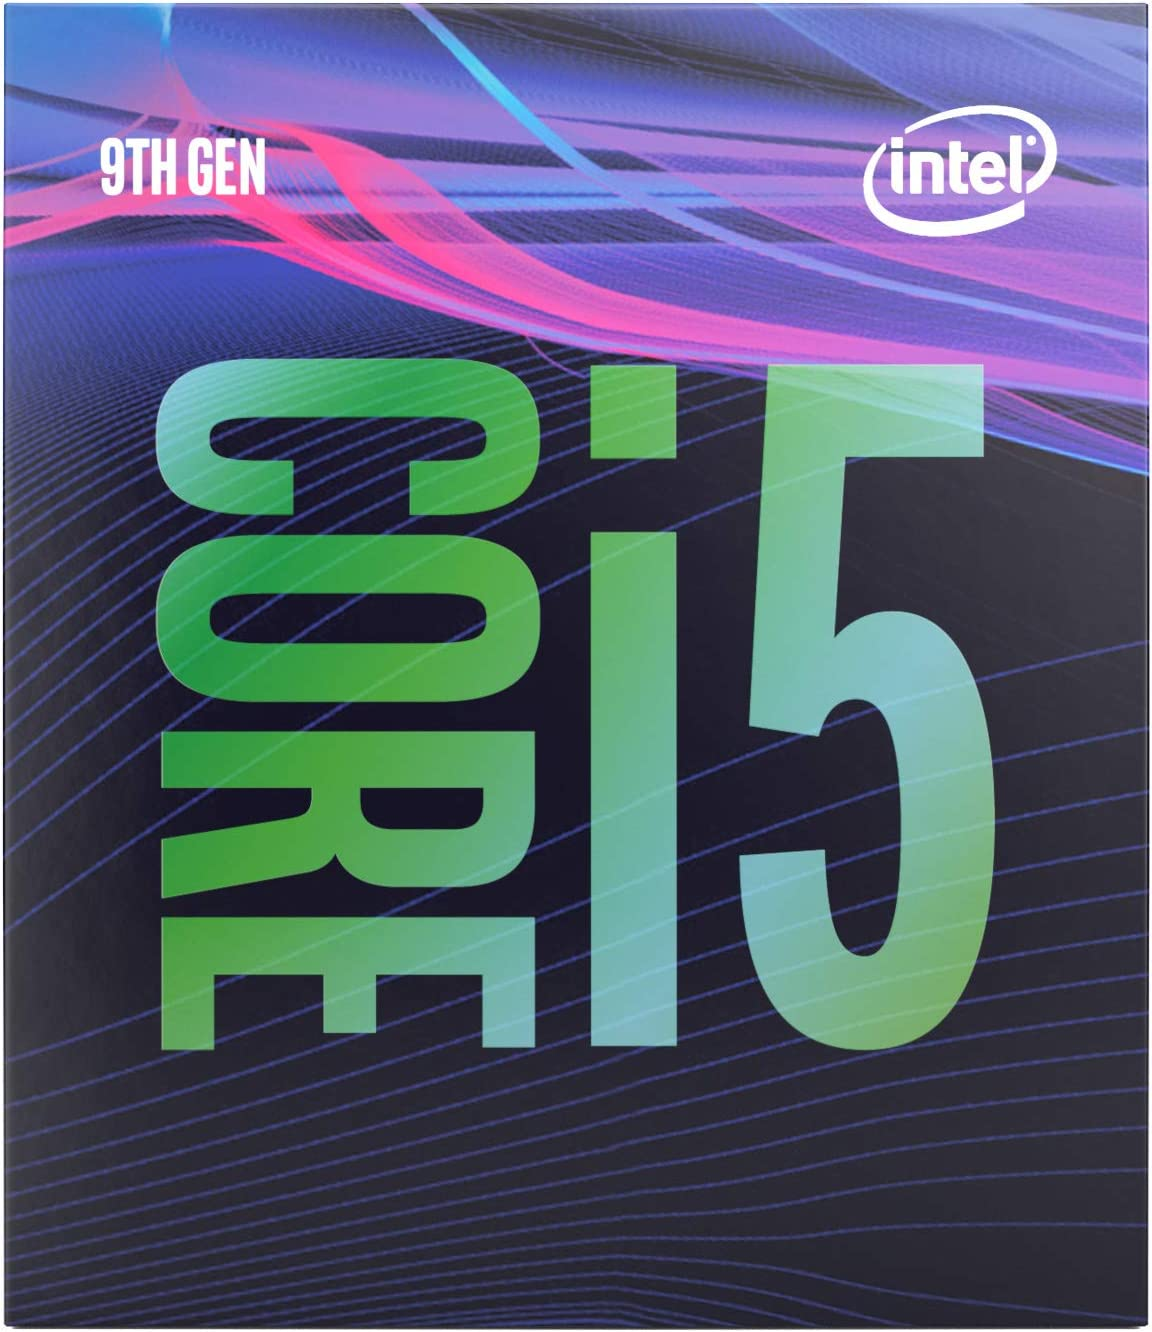 Intel Core i5-9600 Desktop Processor 6 Cores up to 4.6 GHz LGA1151 300 Series 65W